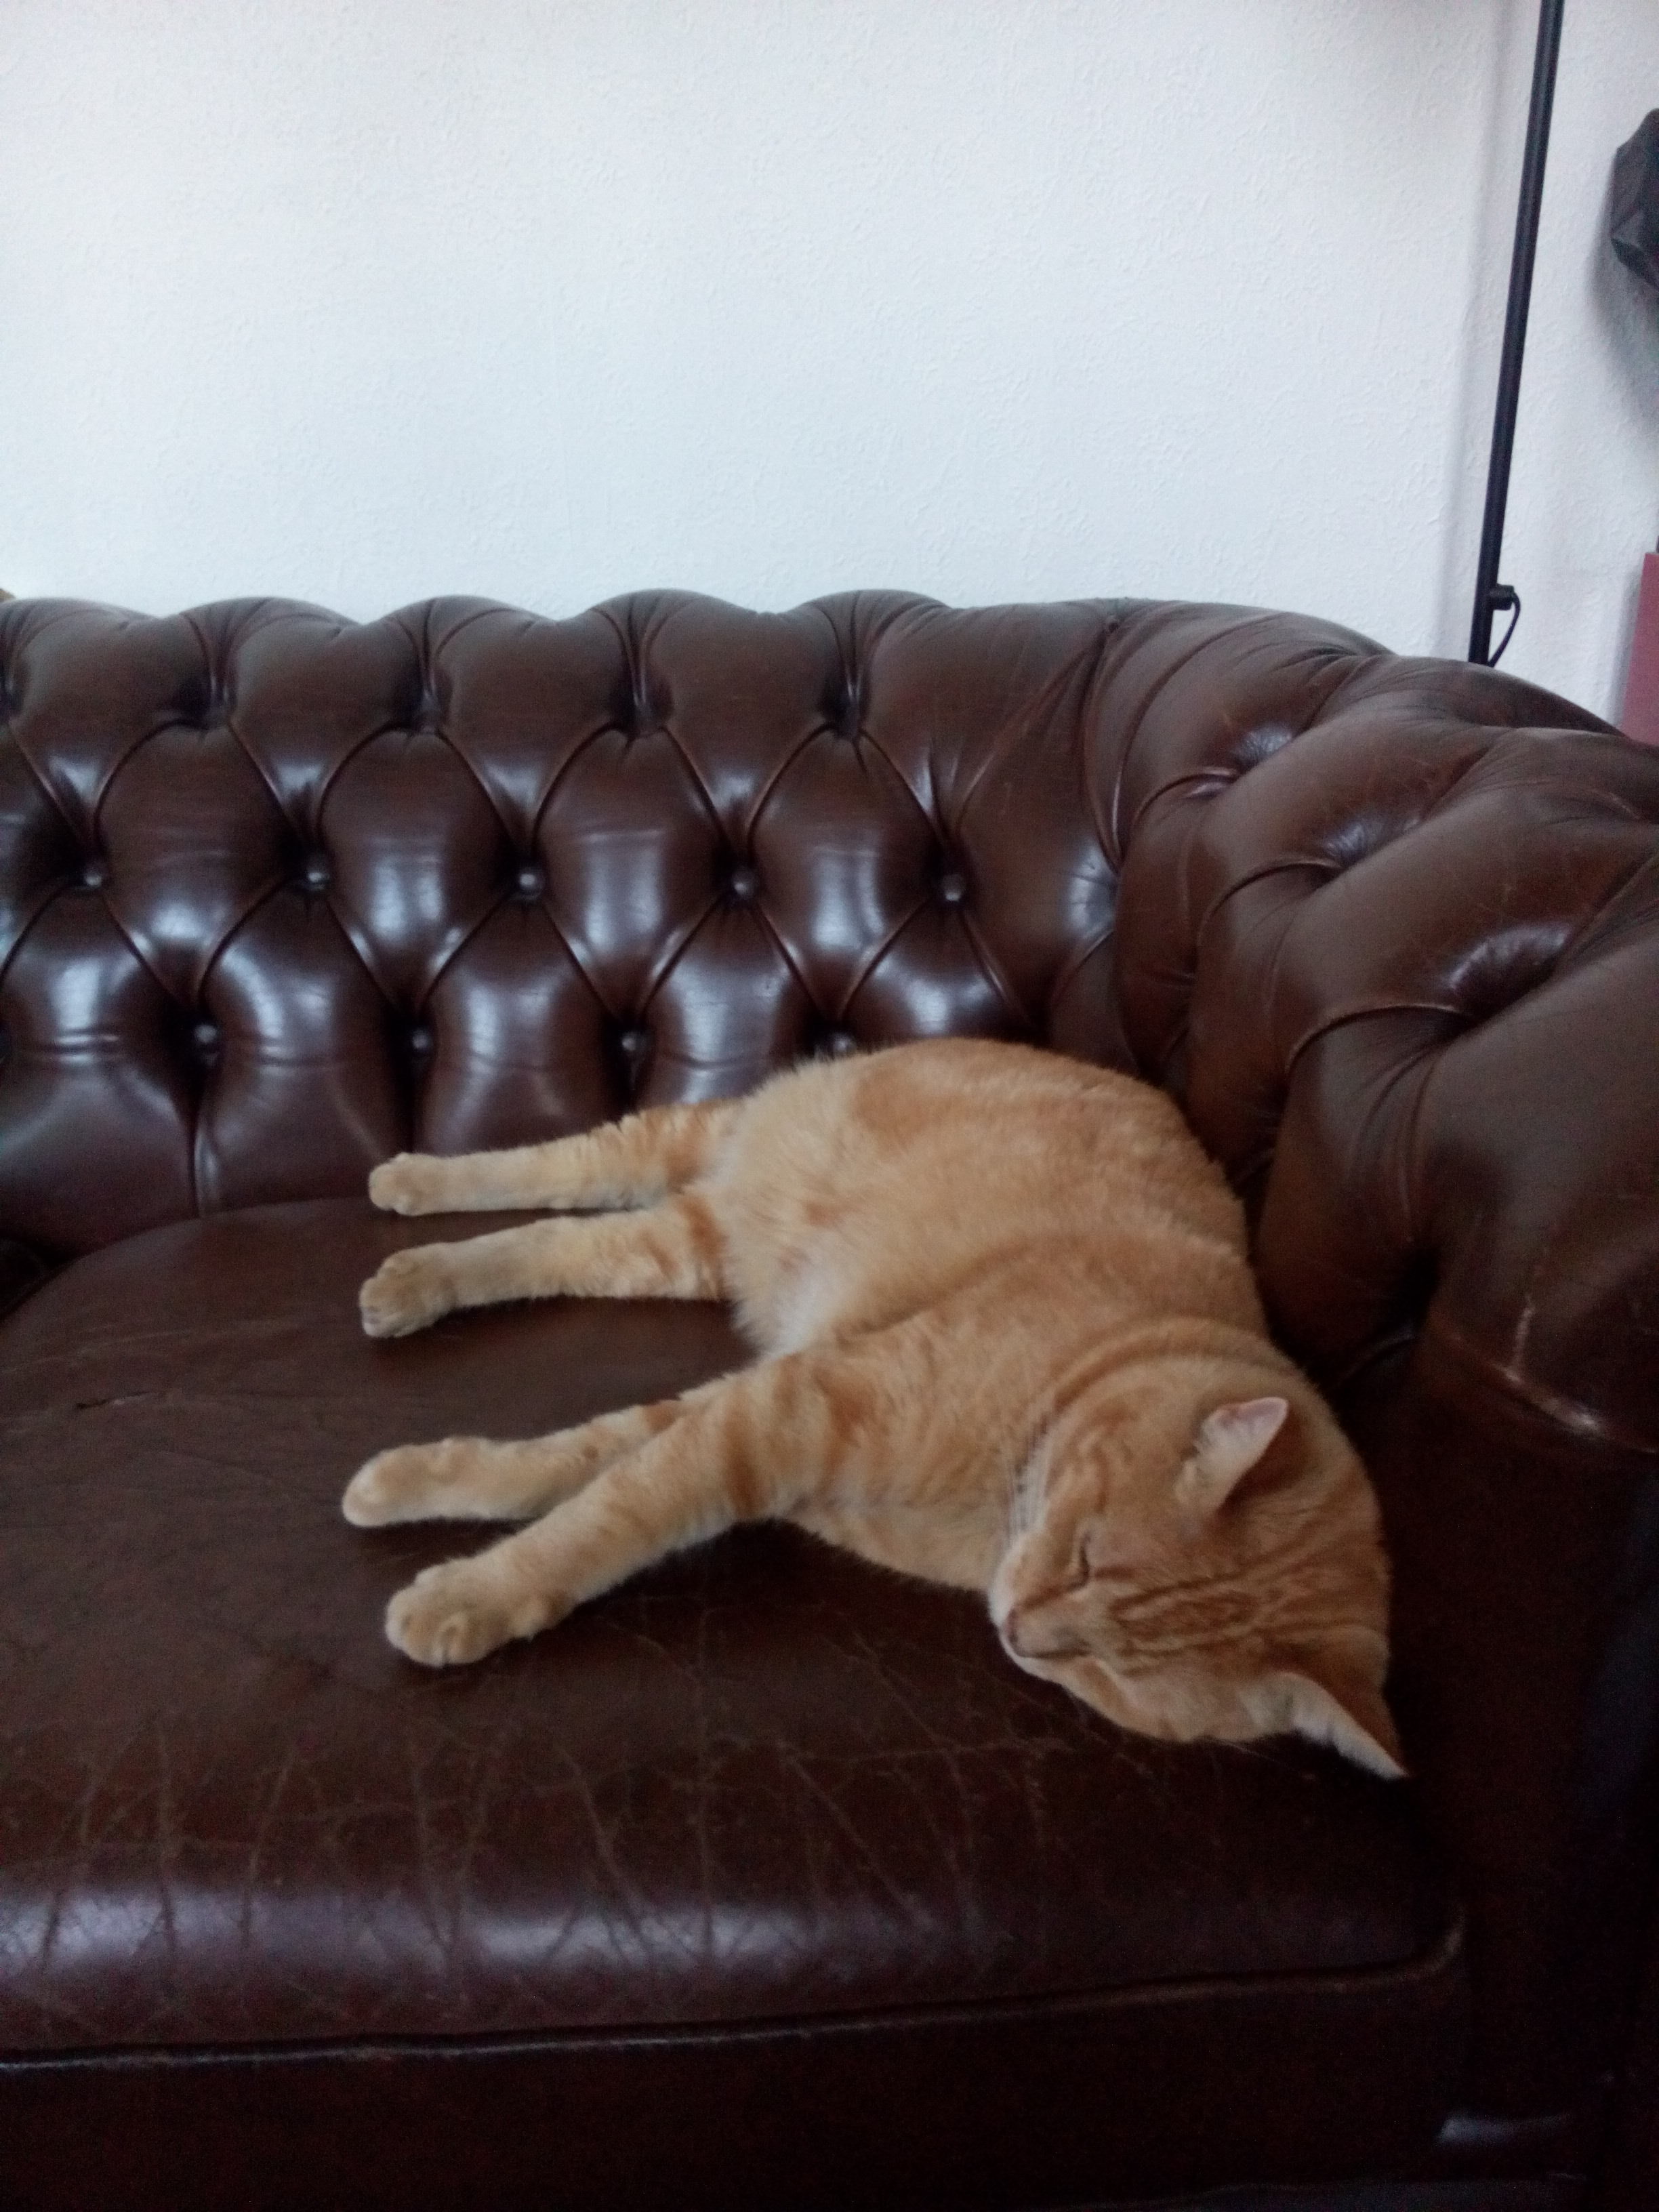 Hobbes Chesterfield http://gerhildemaakt.wordpress.com